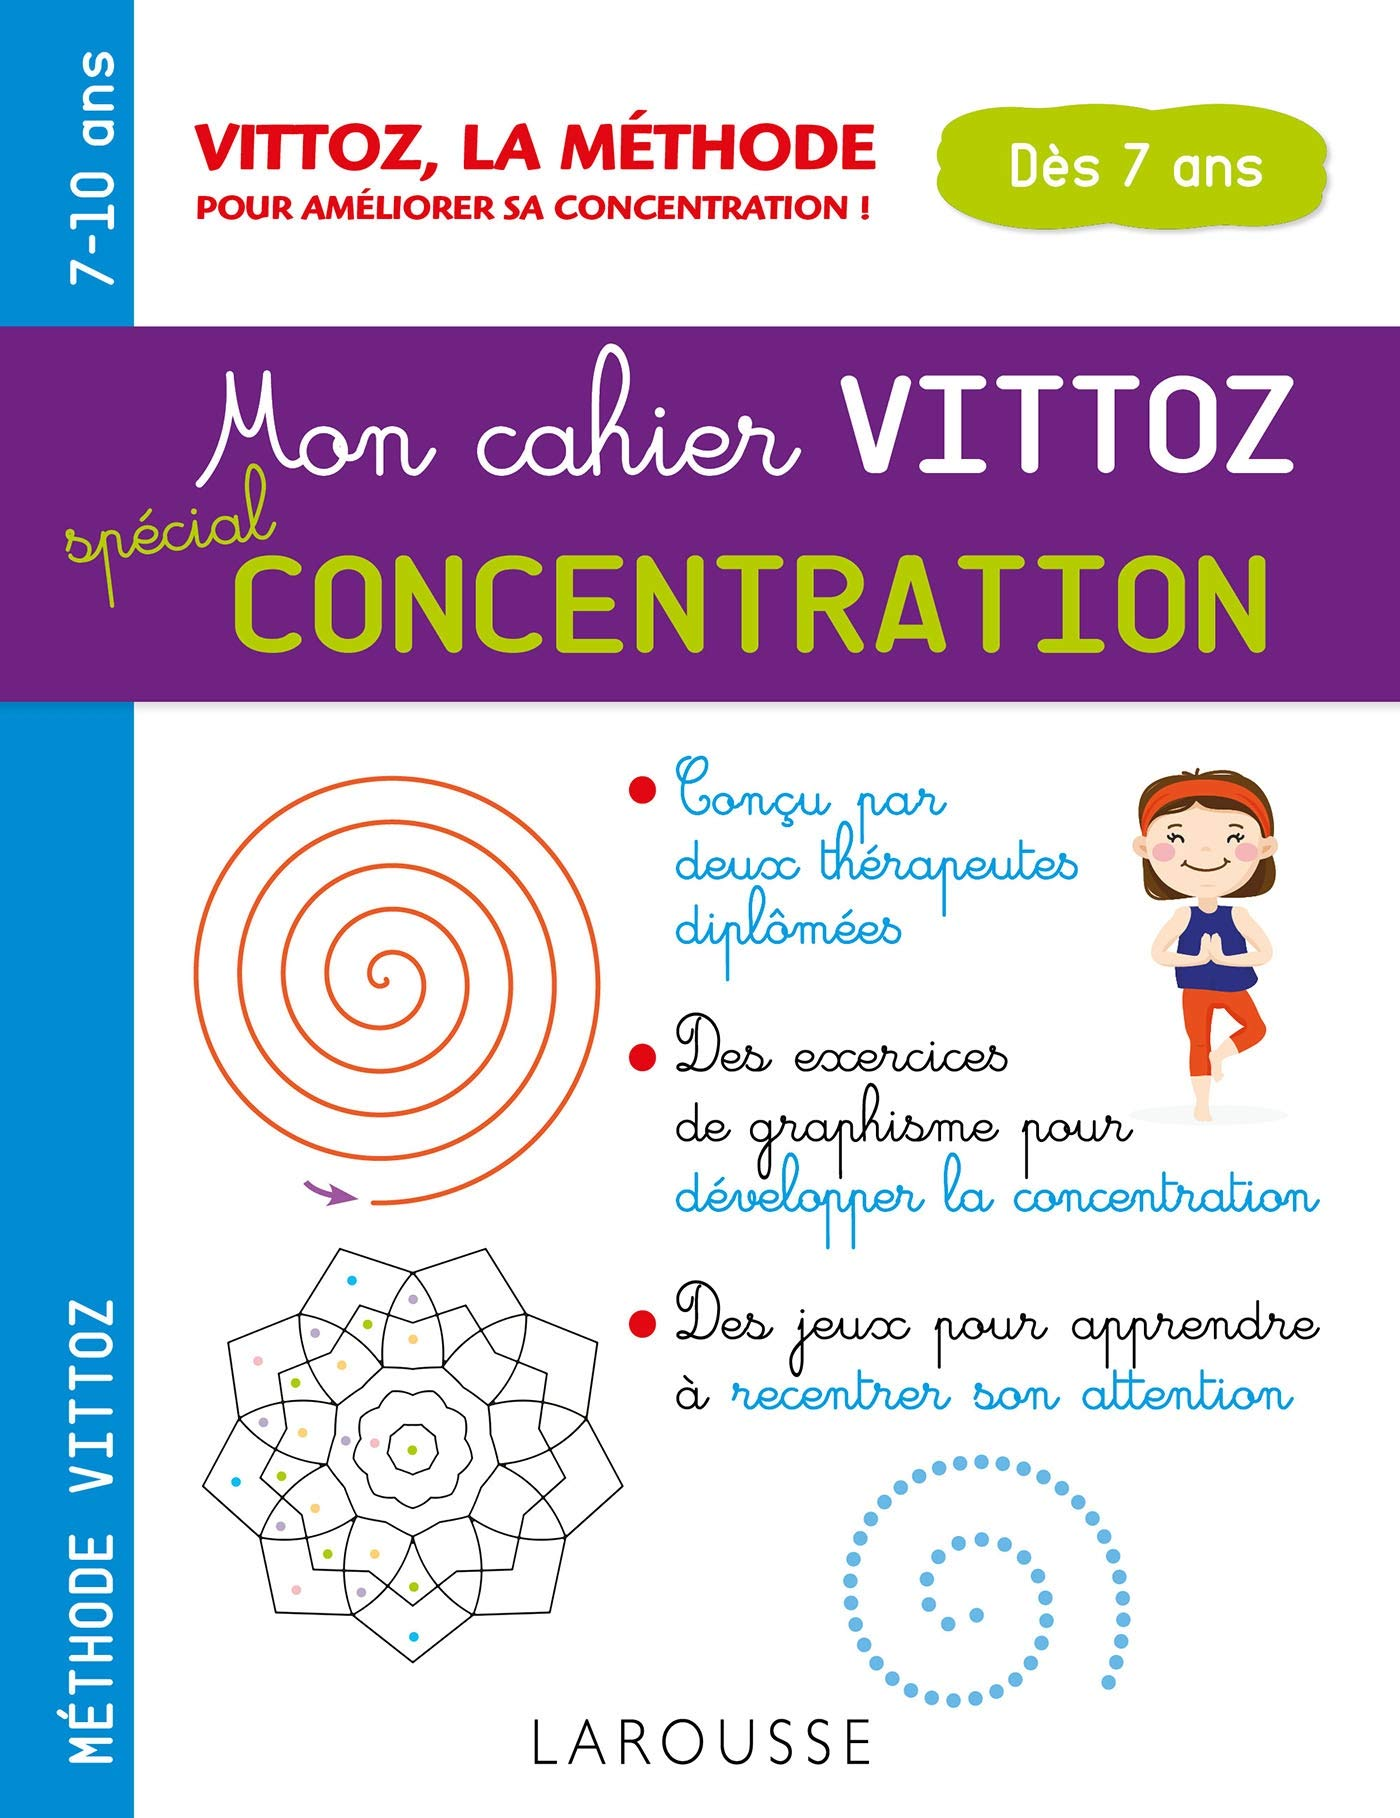 Mon cahier Vittoz, exercices et activités pour la concentration (7 ans et +)